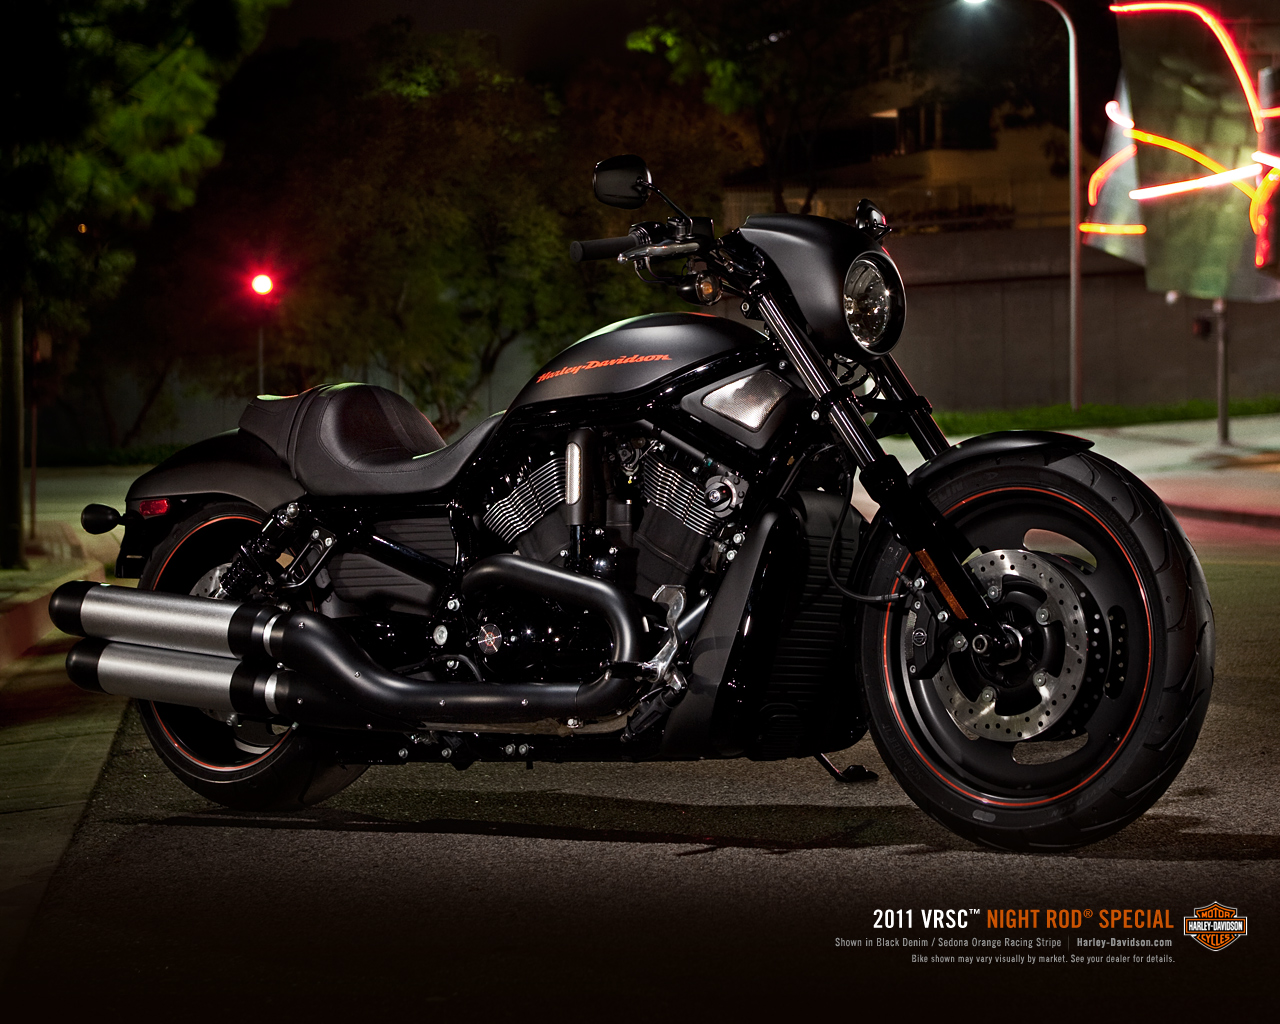 Harley Davidson Night Rod Wallpaper 1280x1024 15659